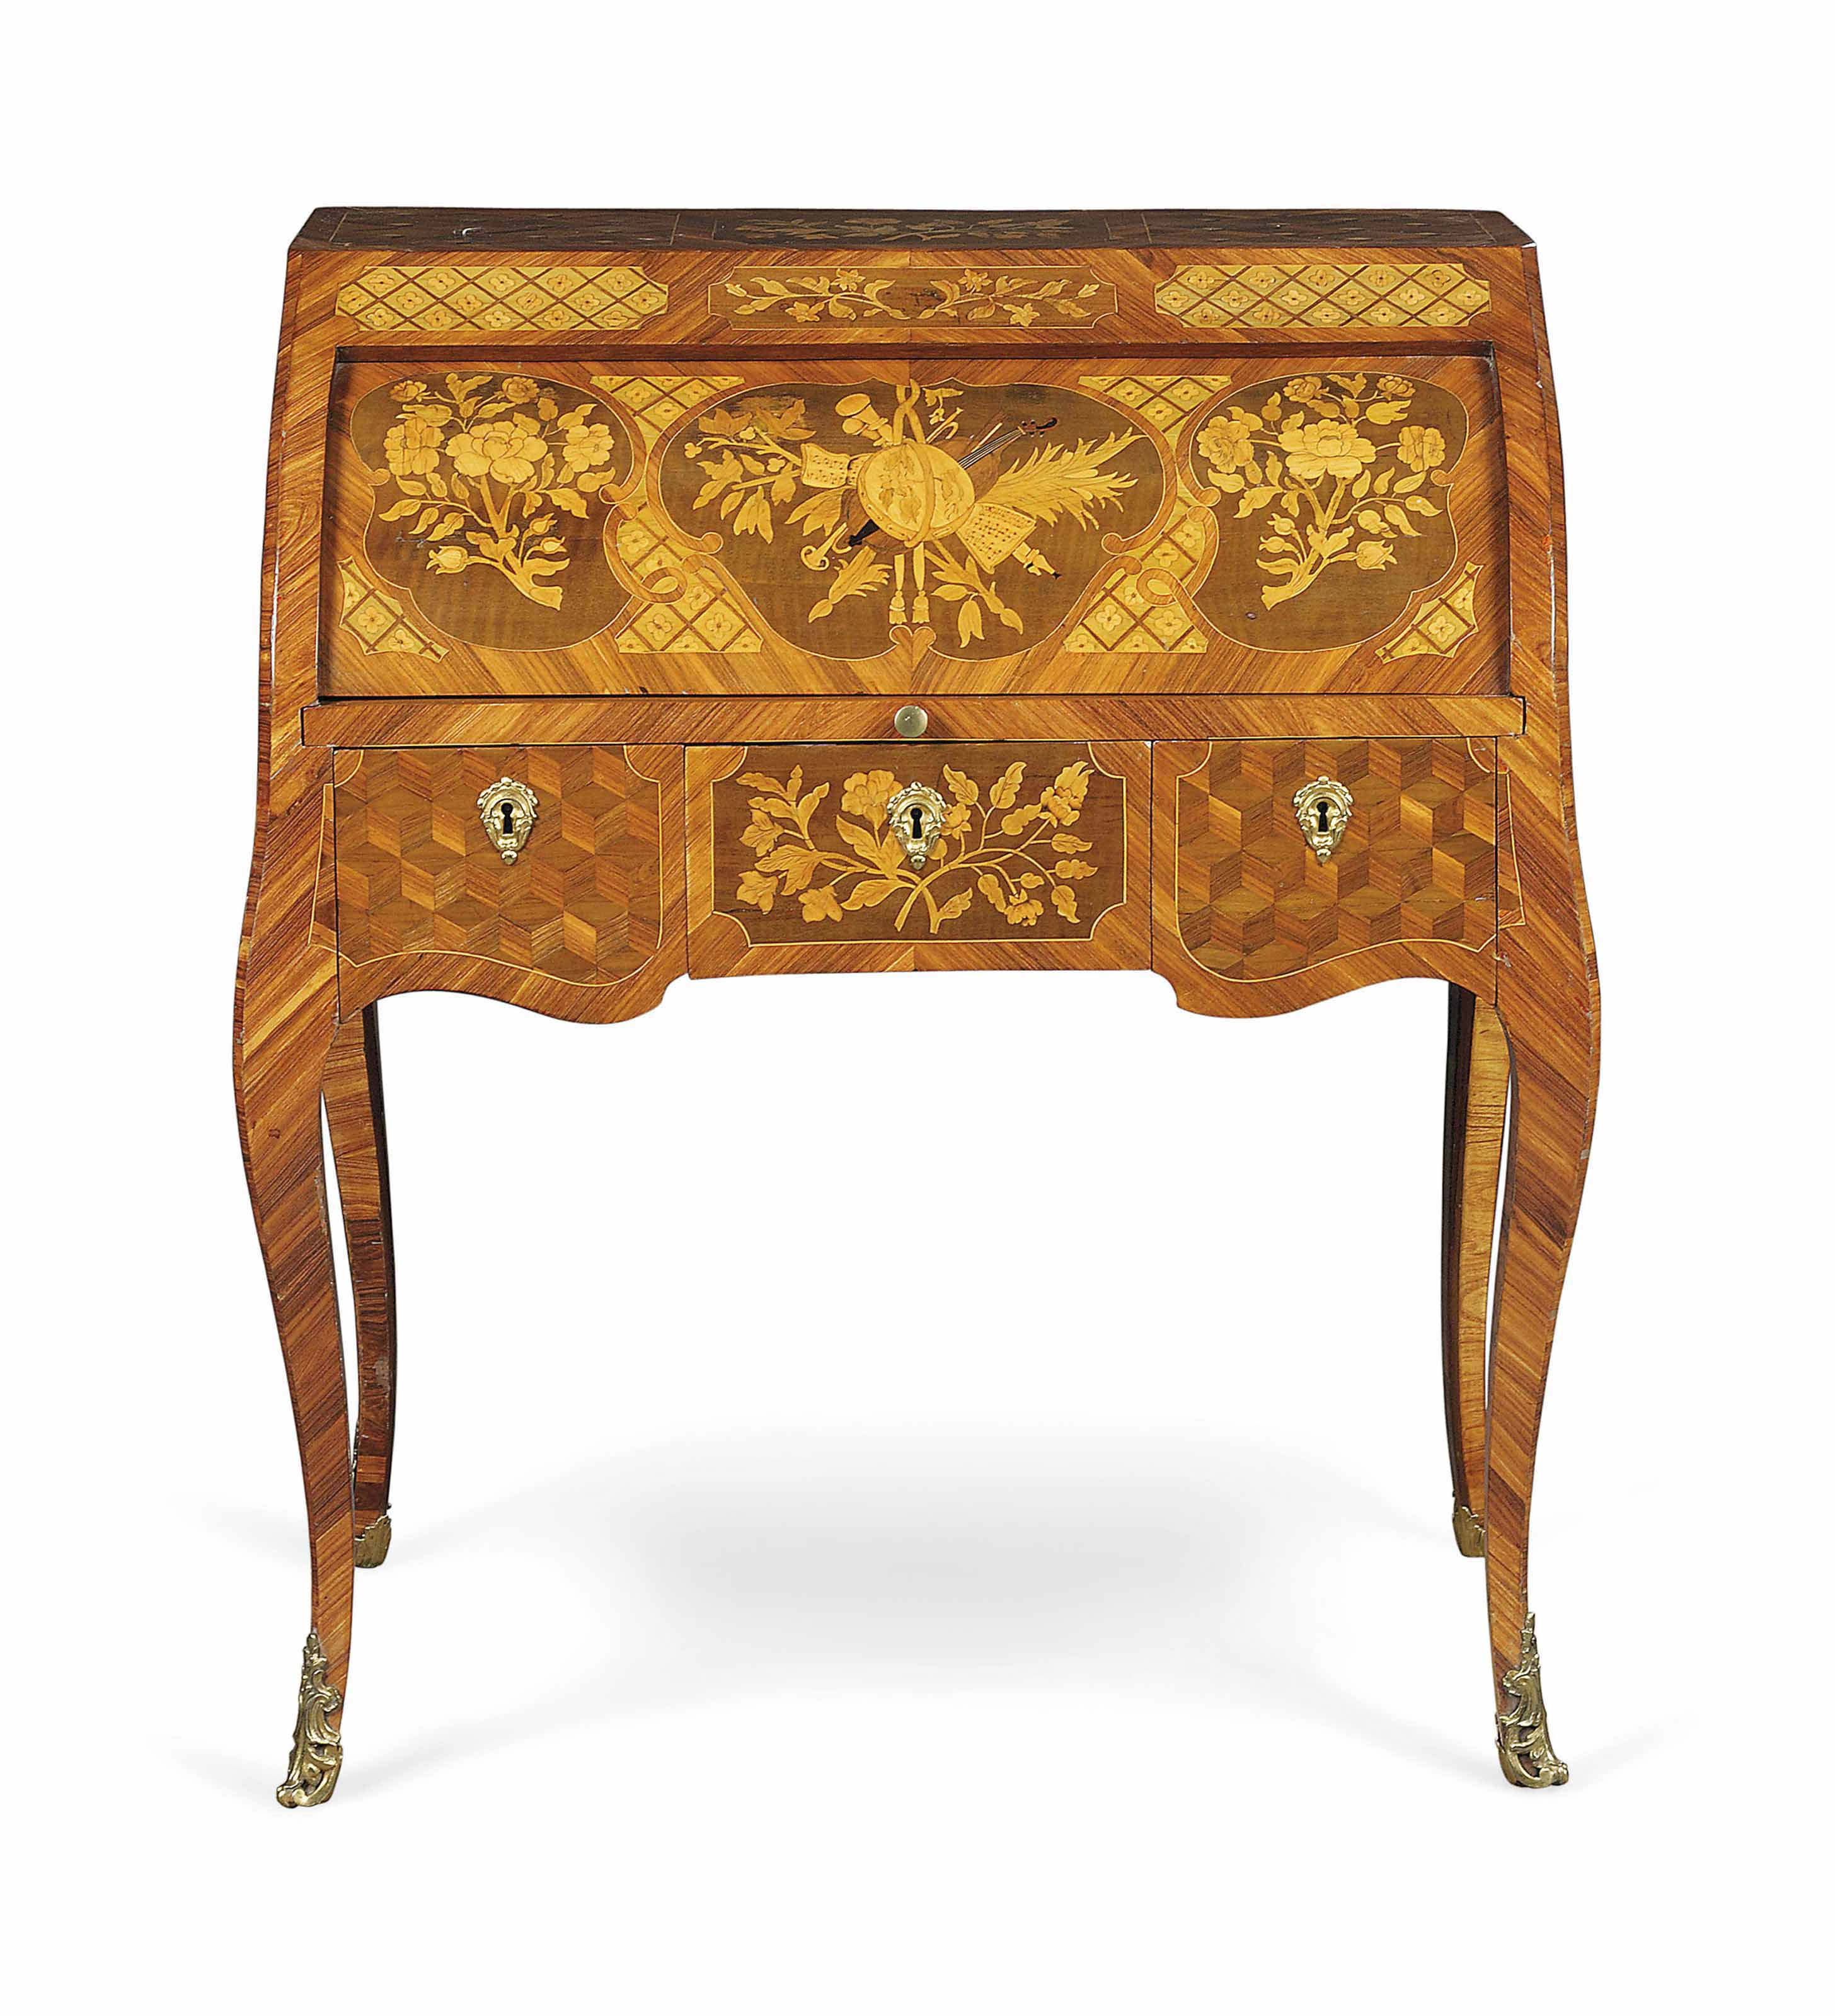 A LOUIS XV ORMOLU-MOUNTED TULIPWOOD, KINGWOOD, AMARANTH, GREEN-STAINED WOOD MARQUETRY AND PARQUETRY BUREAU À CYLINDRE